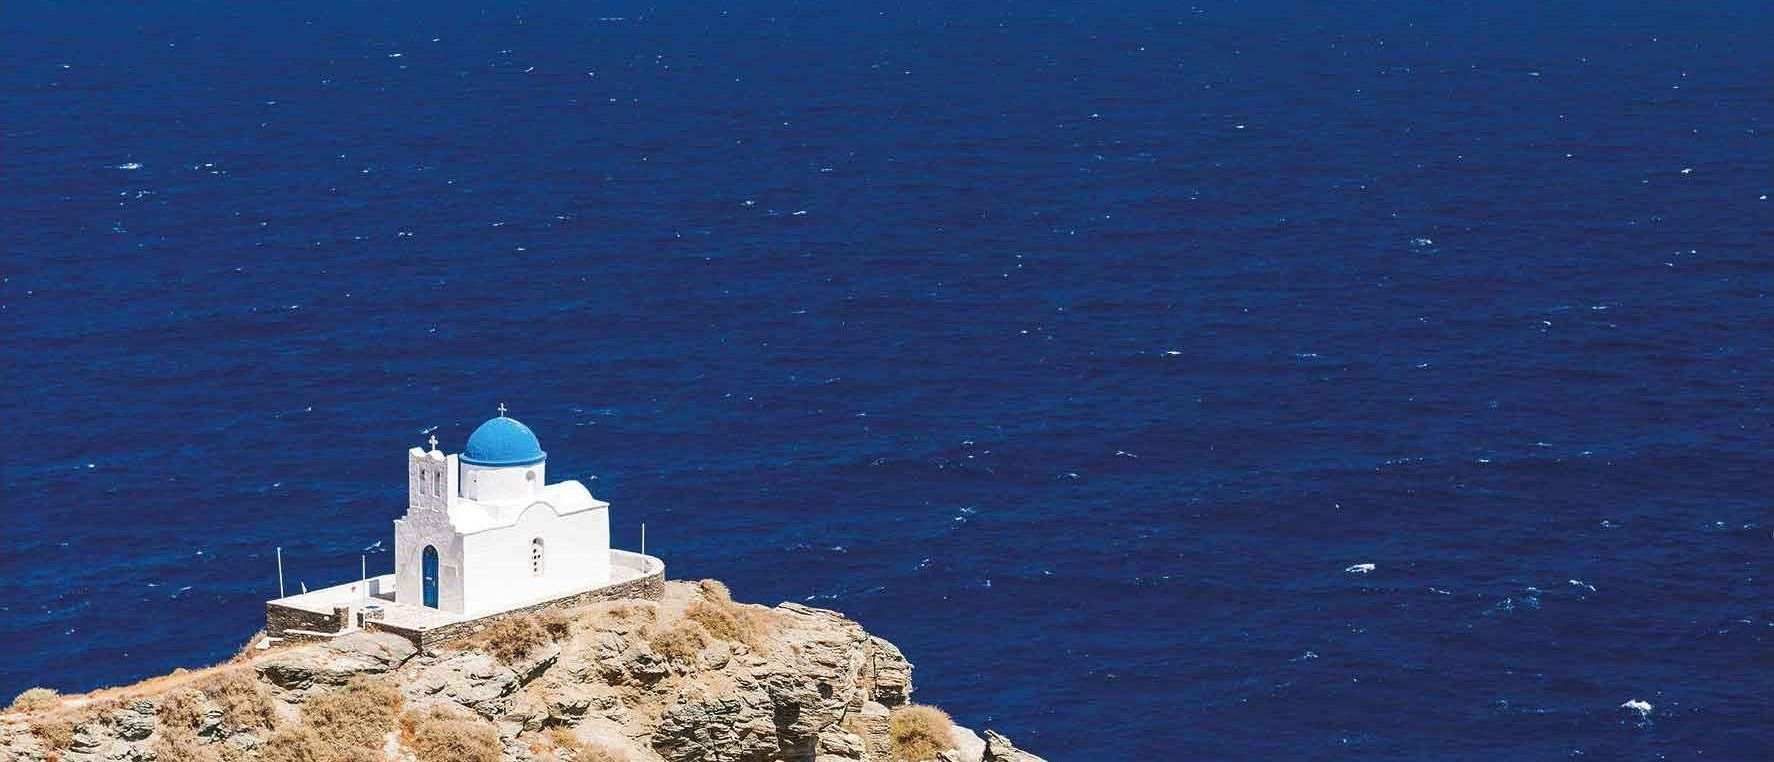 frontpage main image_sifnos